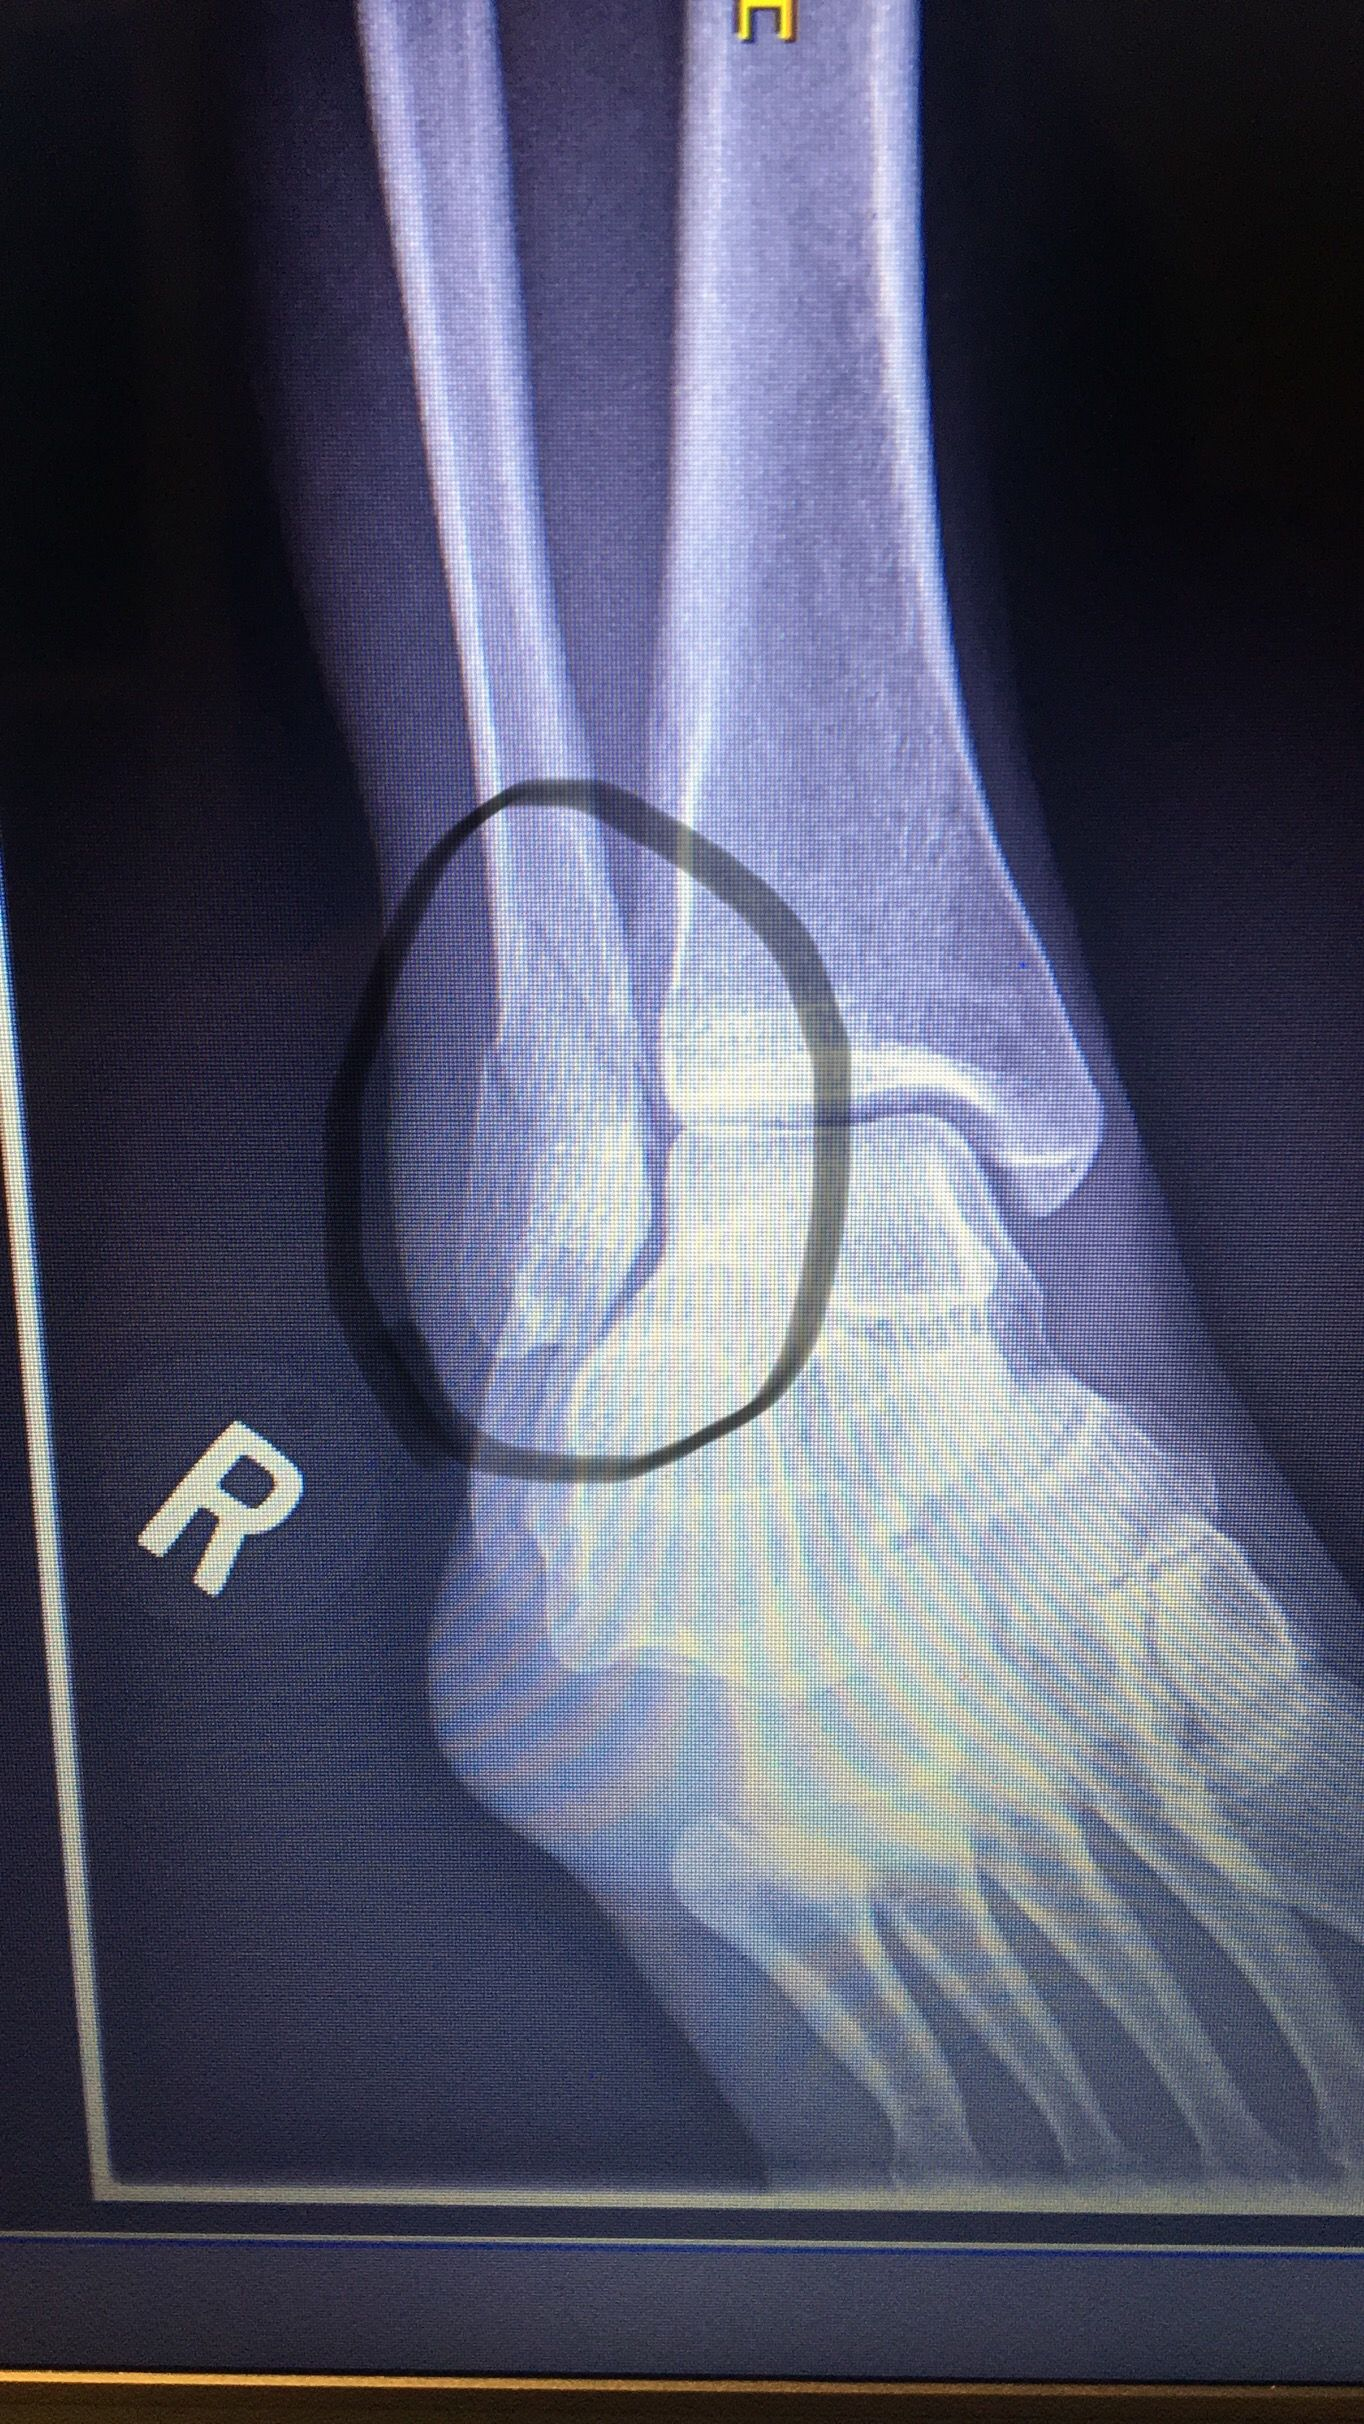 Broken fibula ankle fracture with images ankle